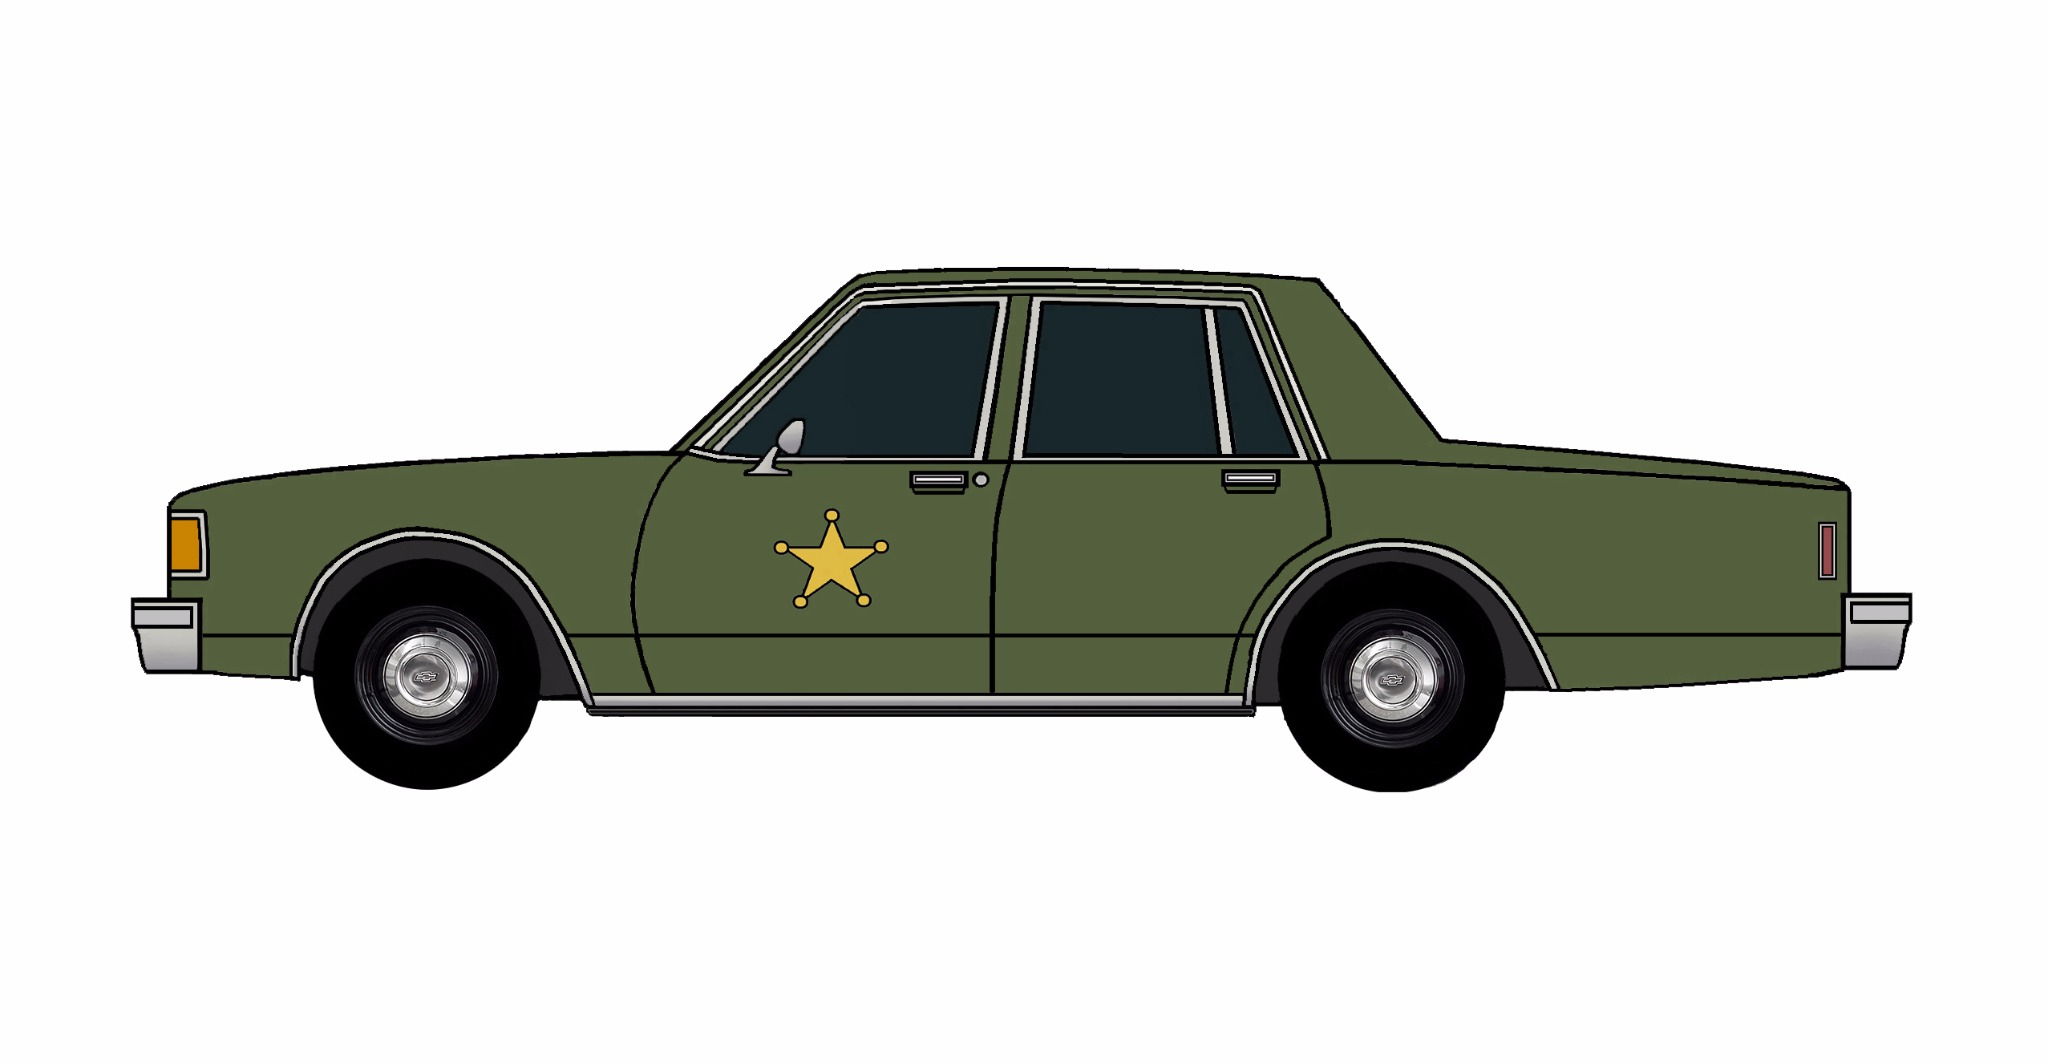 1986 Chevy Caprice 9C1 ARMY GREEN